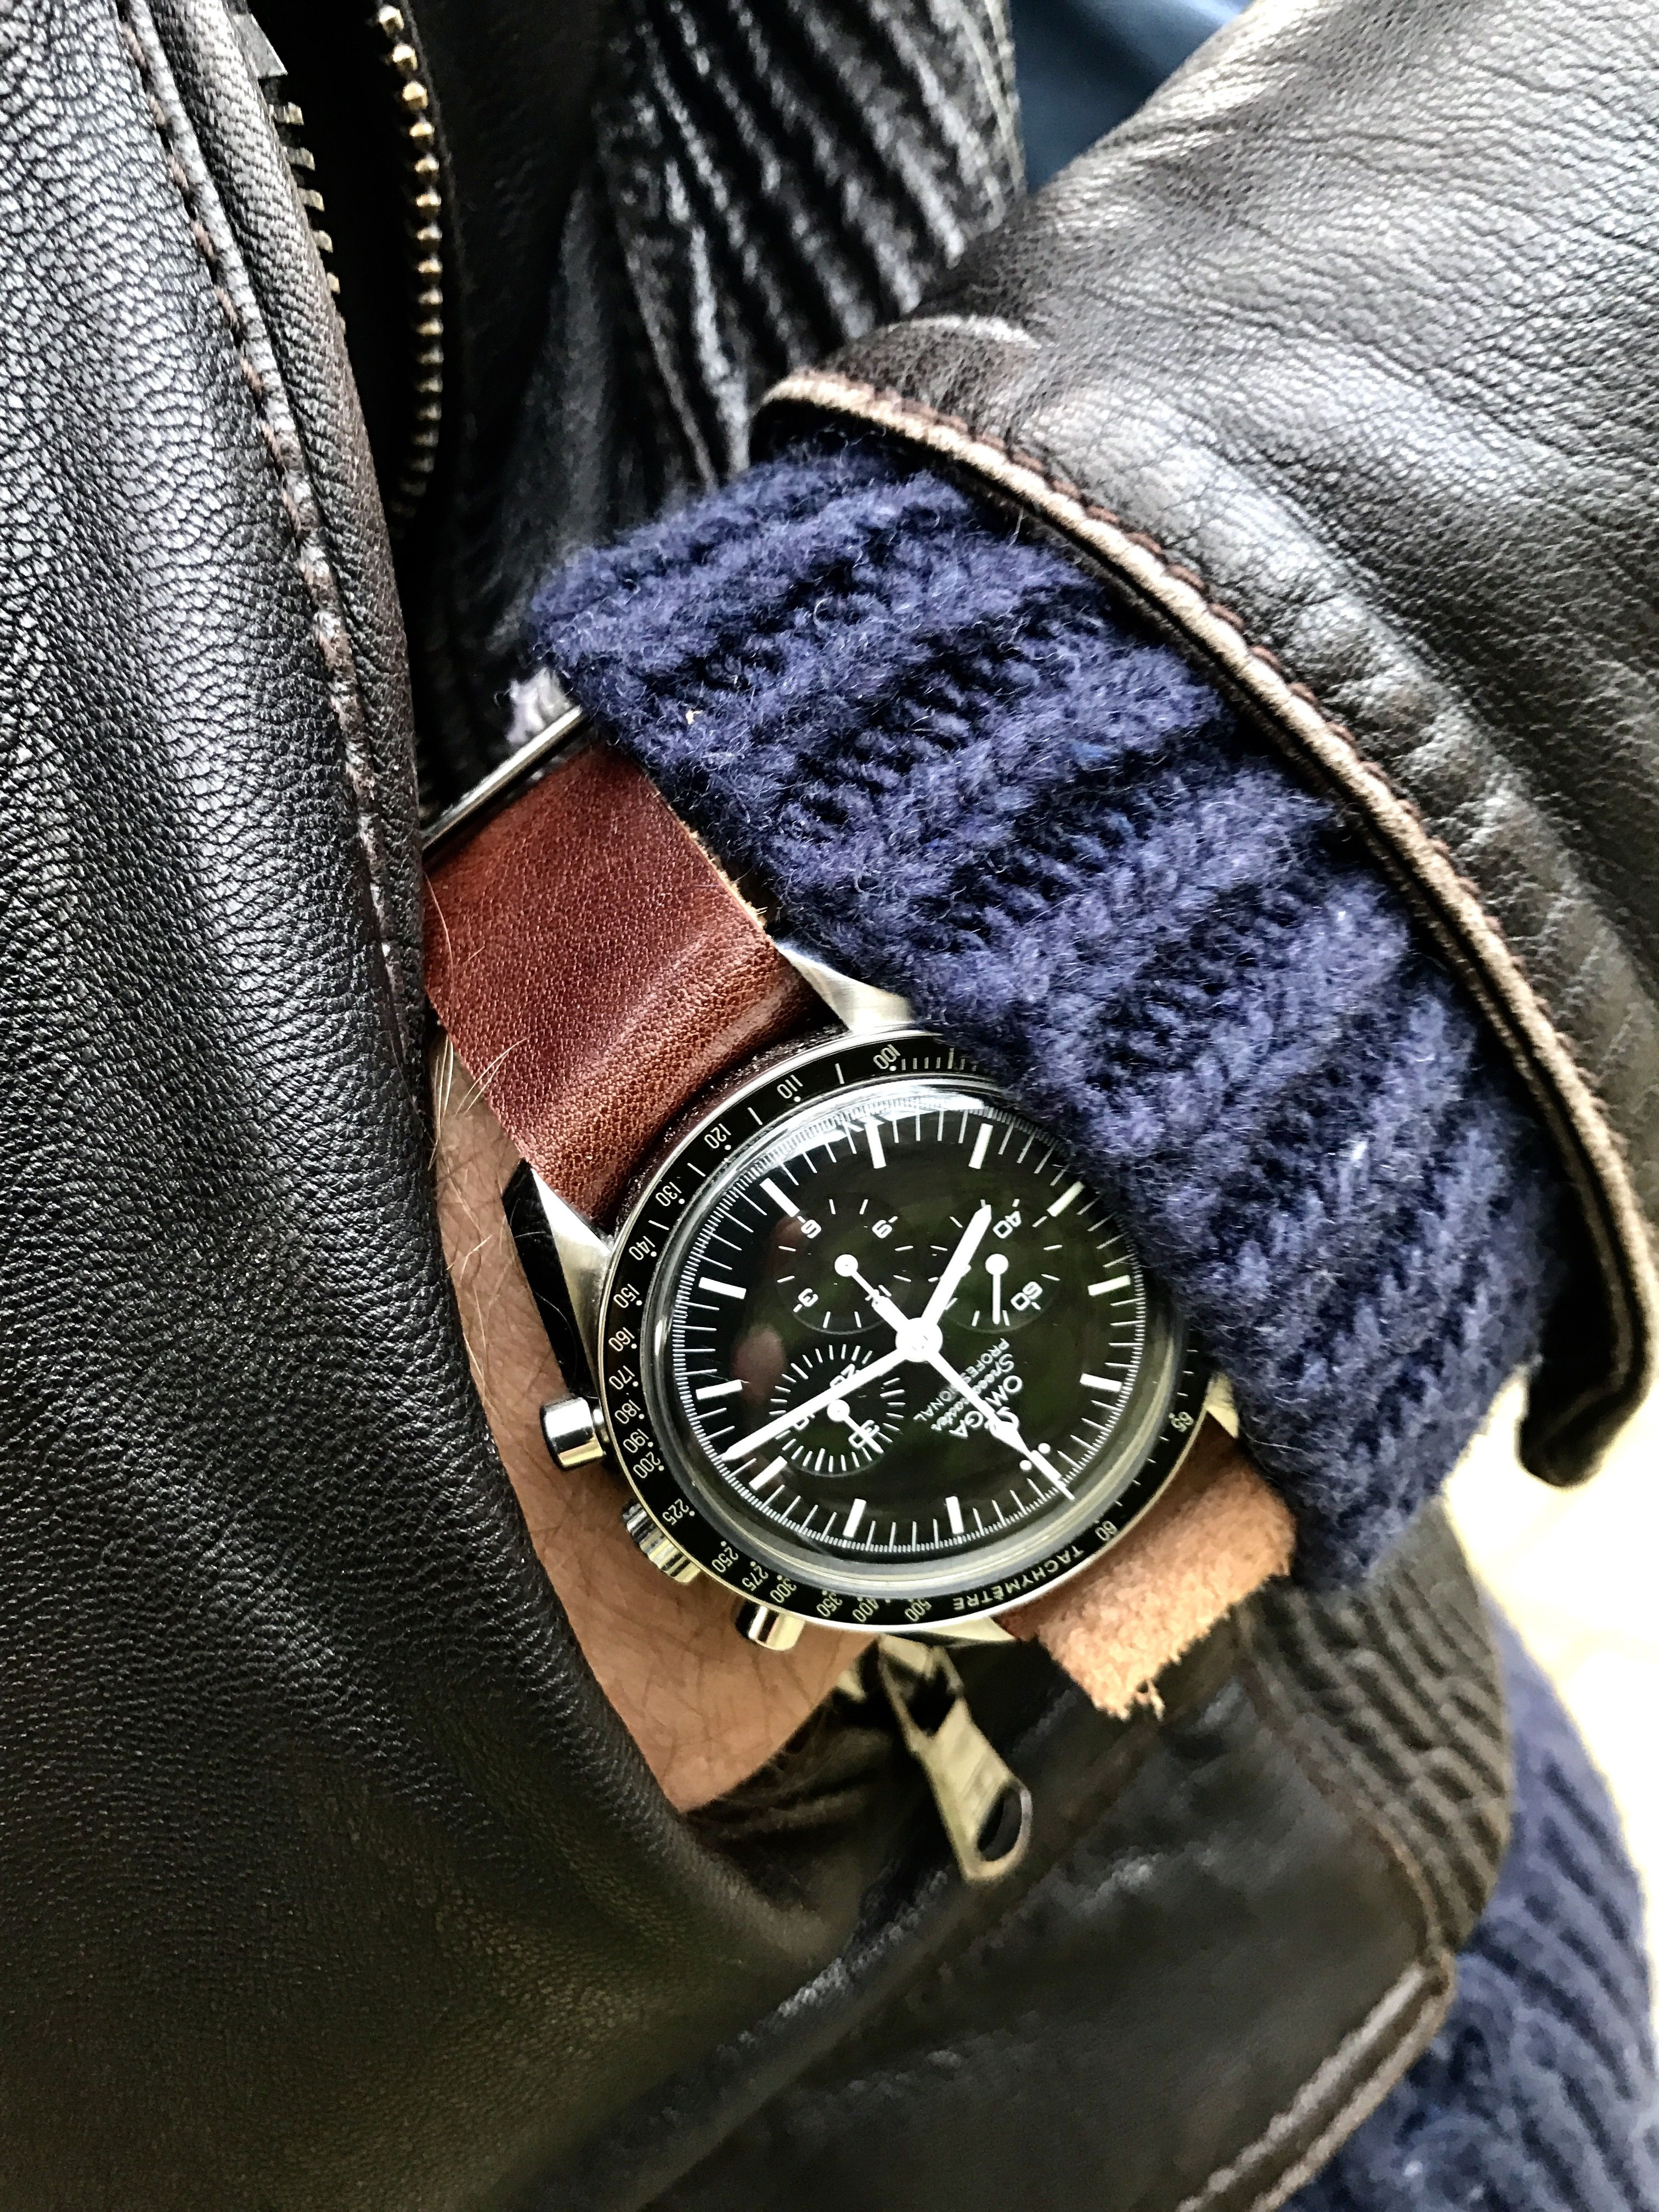 fde7ed90490 Vintage leather jacket with a vintage leather nato strap on the Omega  Speedmaster Professional luxury and legendary watch.